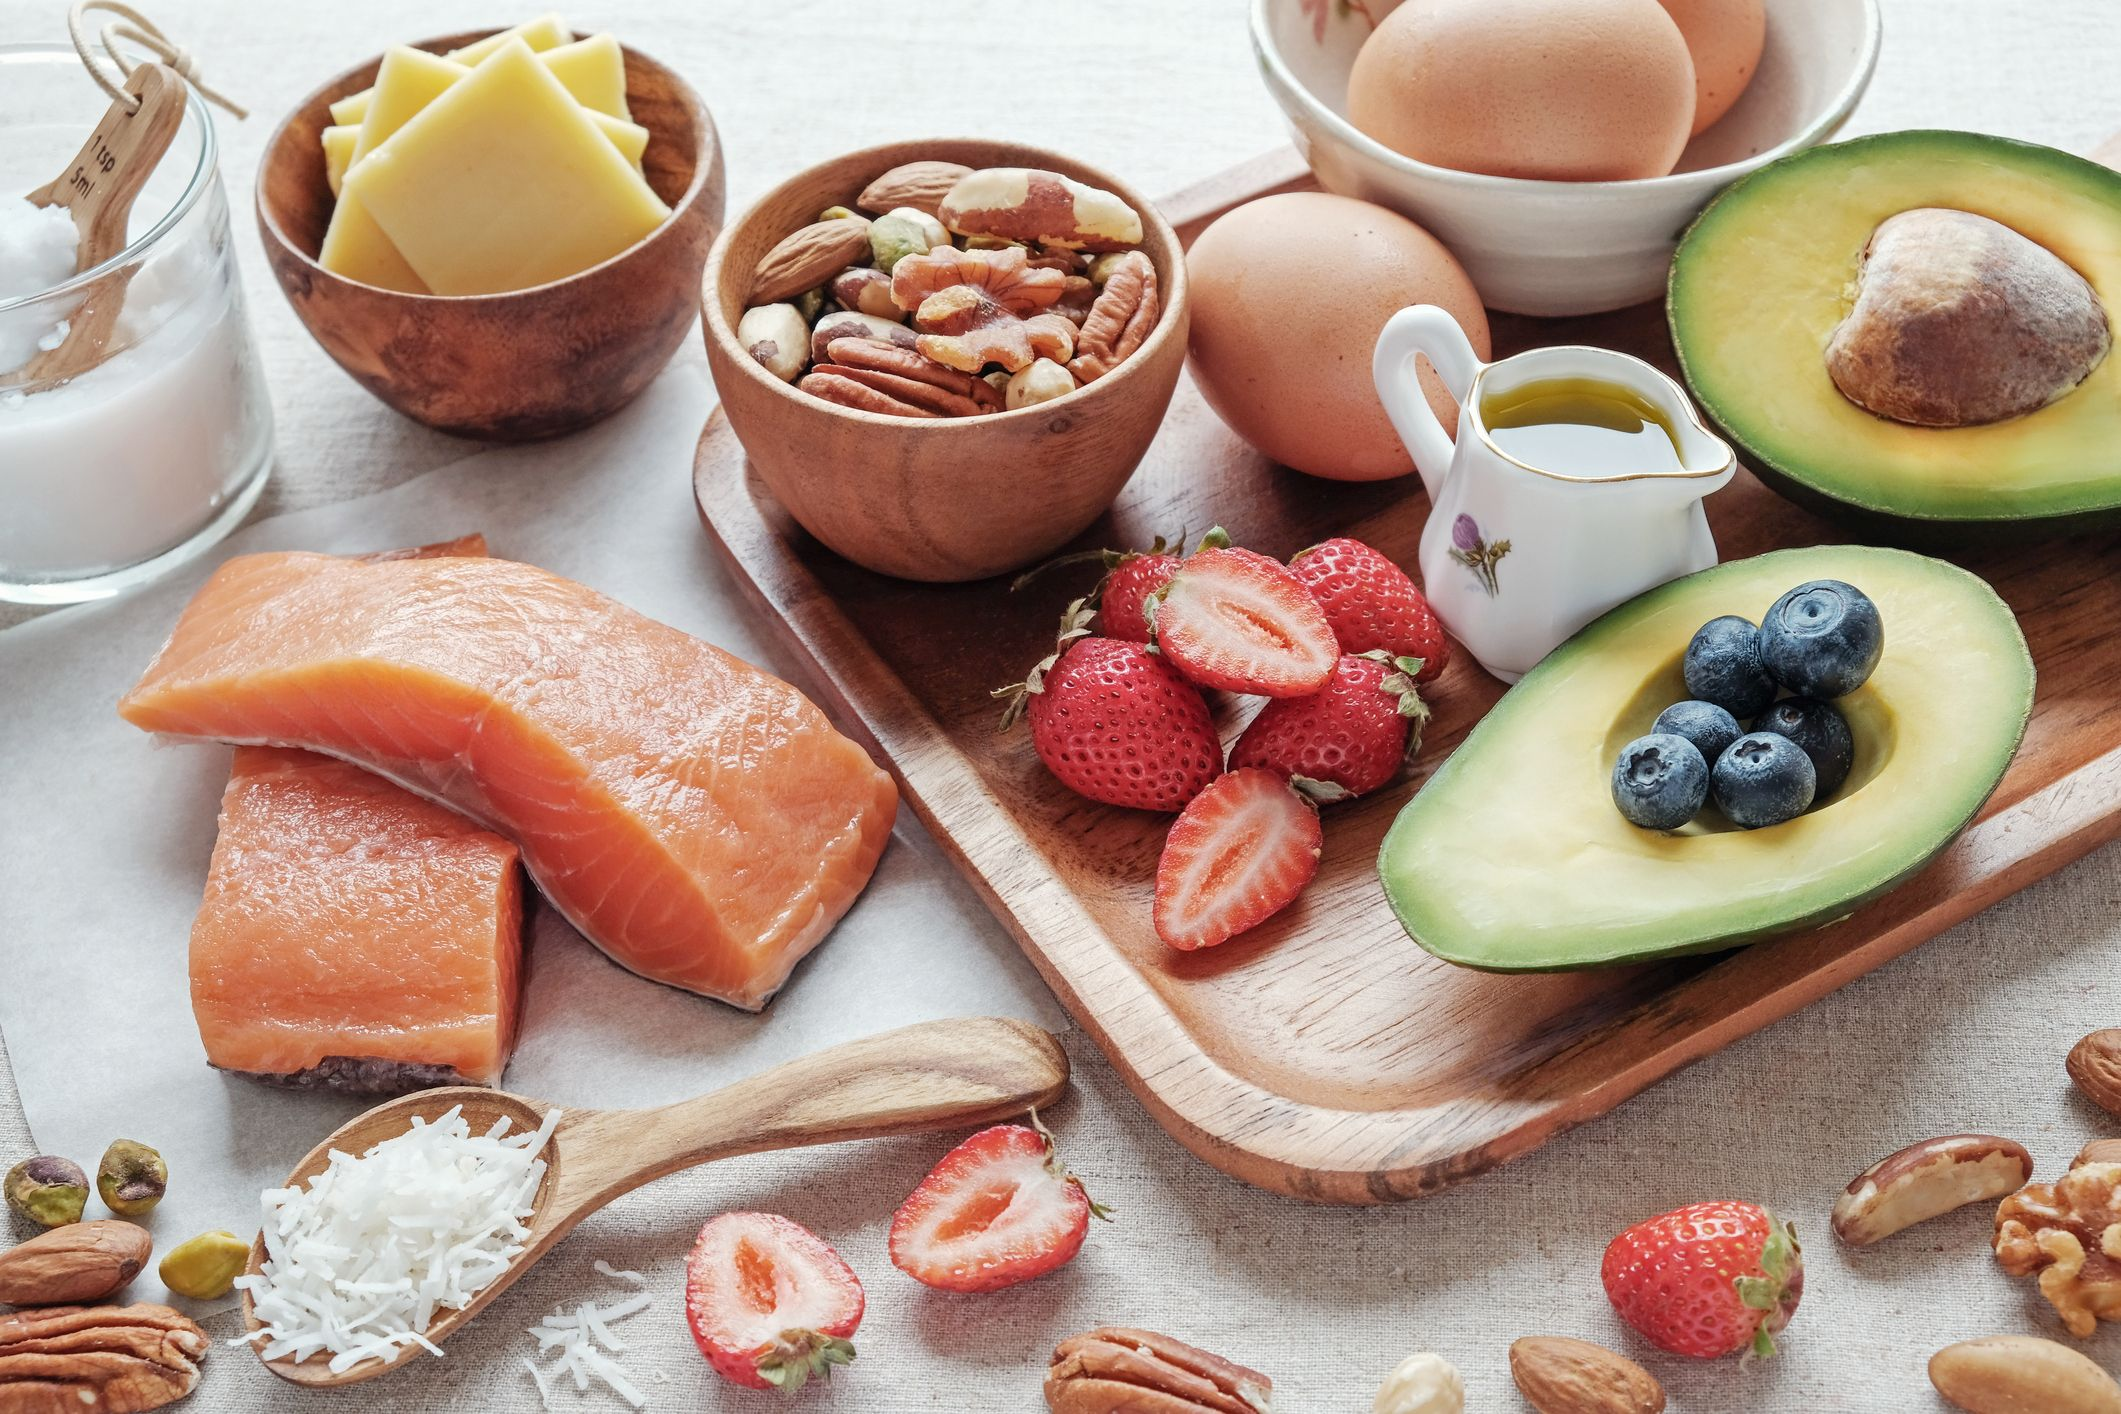 What can you eat for lunch on the keto diet